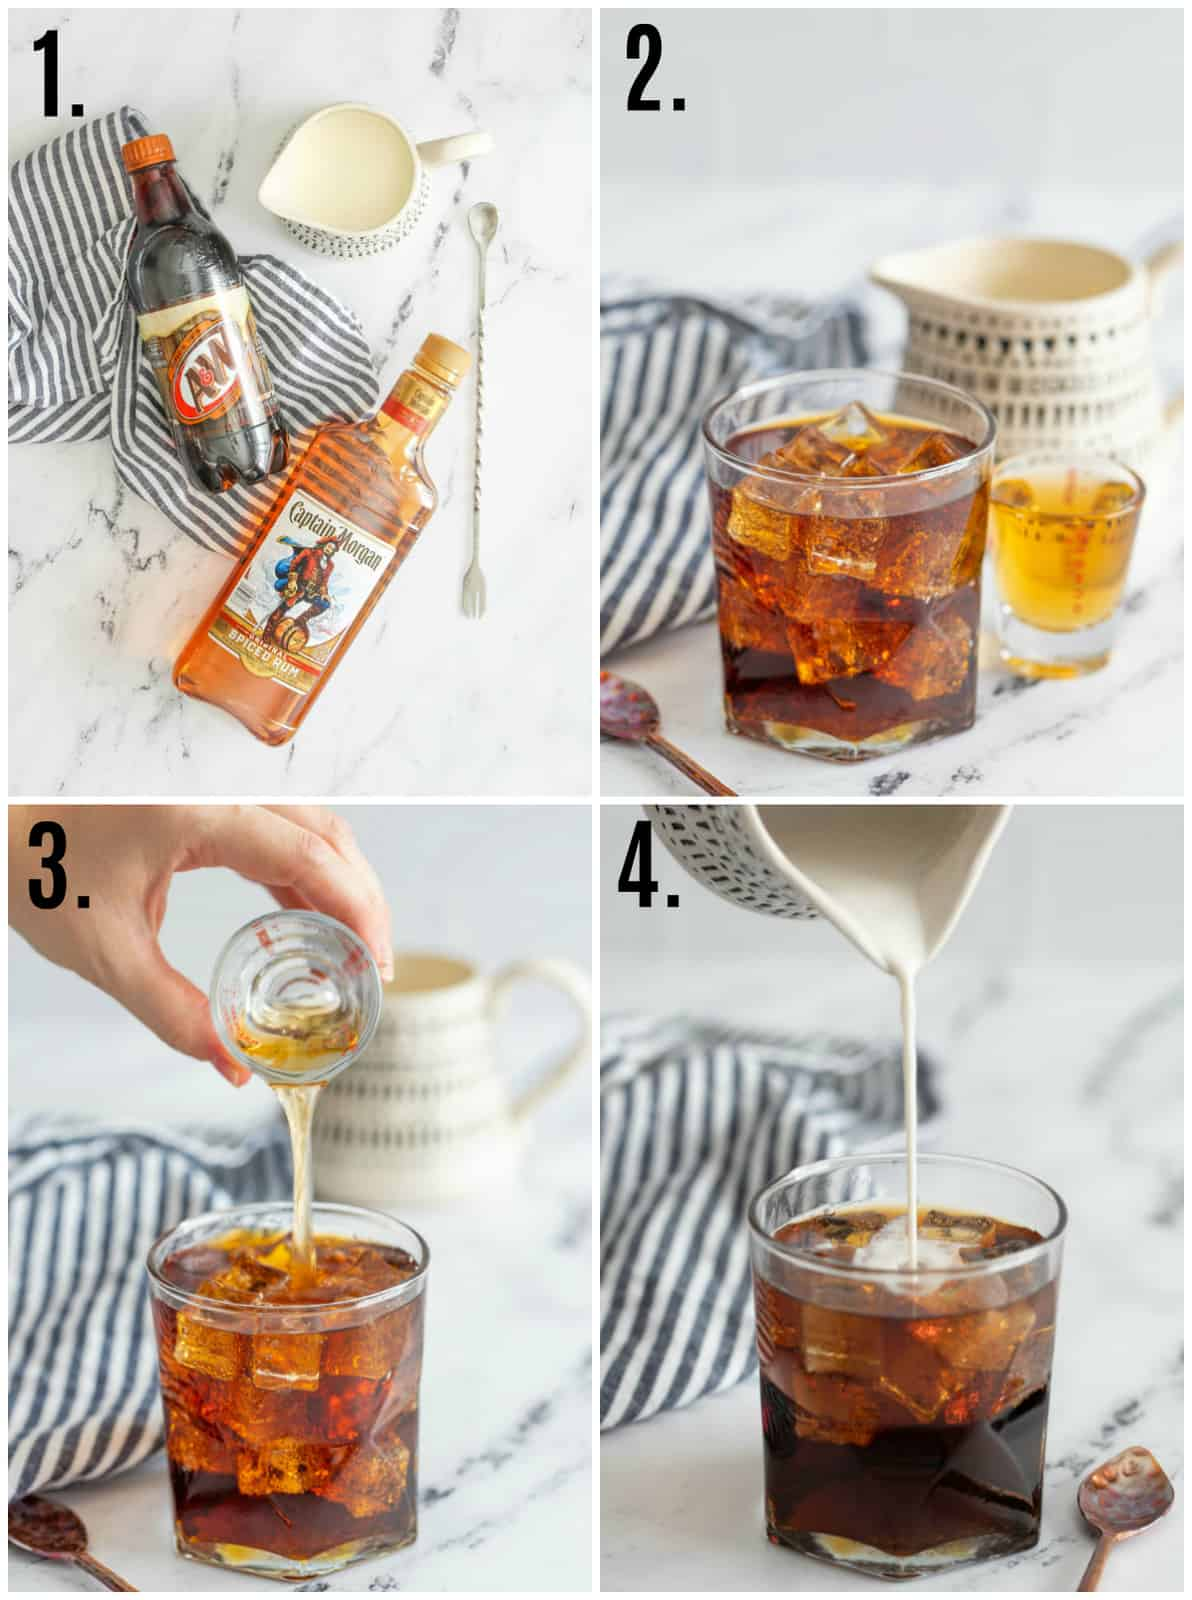 Step by step photos of Creamy Root Beer Rum Cocktail